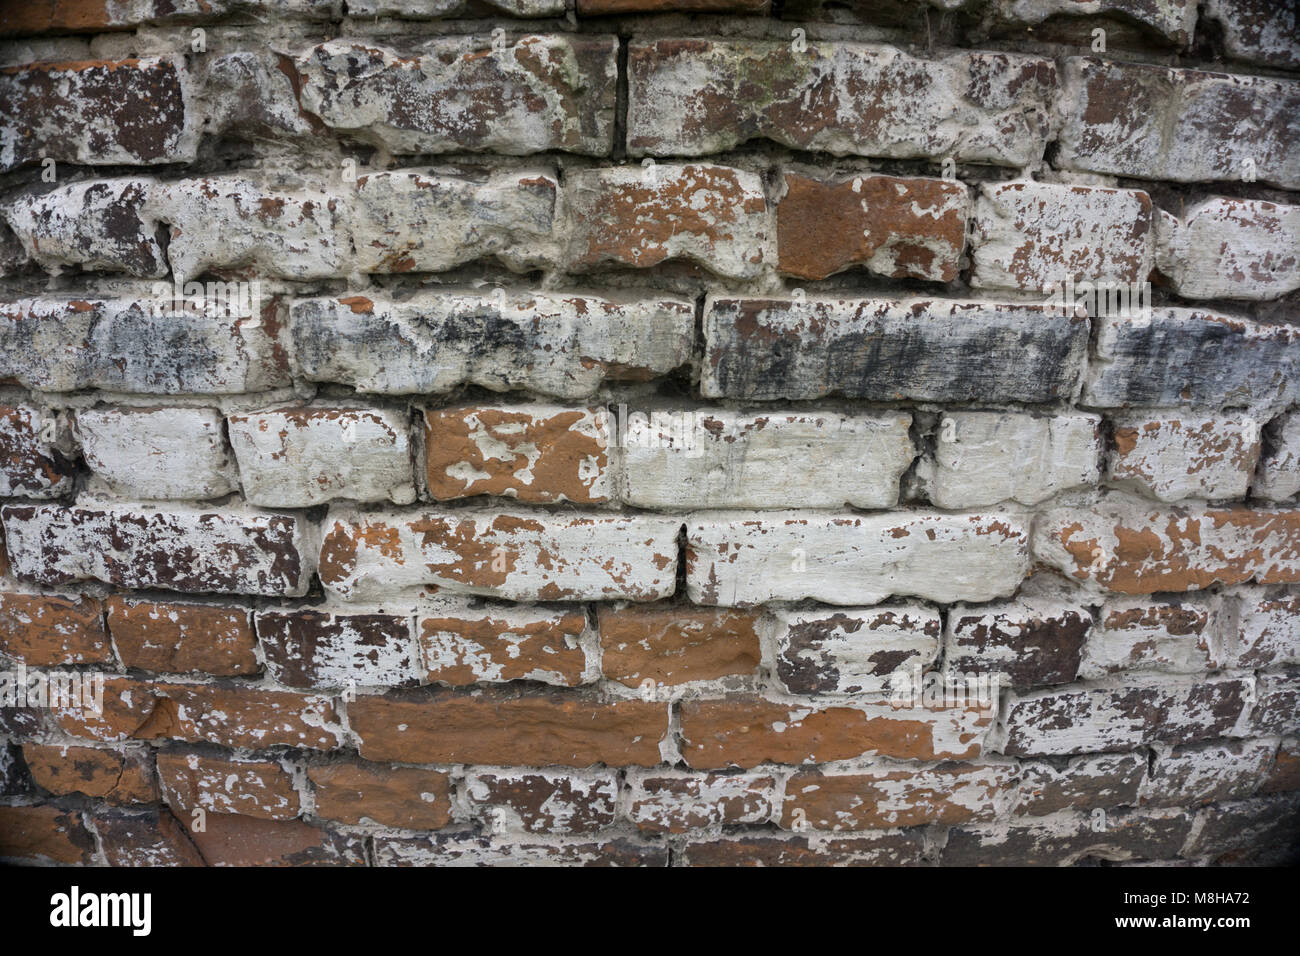 Cracked Dark Red Old Brick Wall Texture. Damaged Brown Abstract Blank Stonewall Background. Ruinous Brickwall Dilapidation - Stock Image